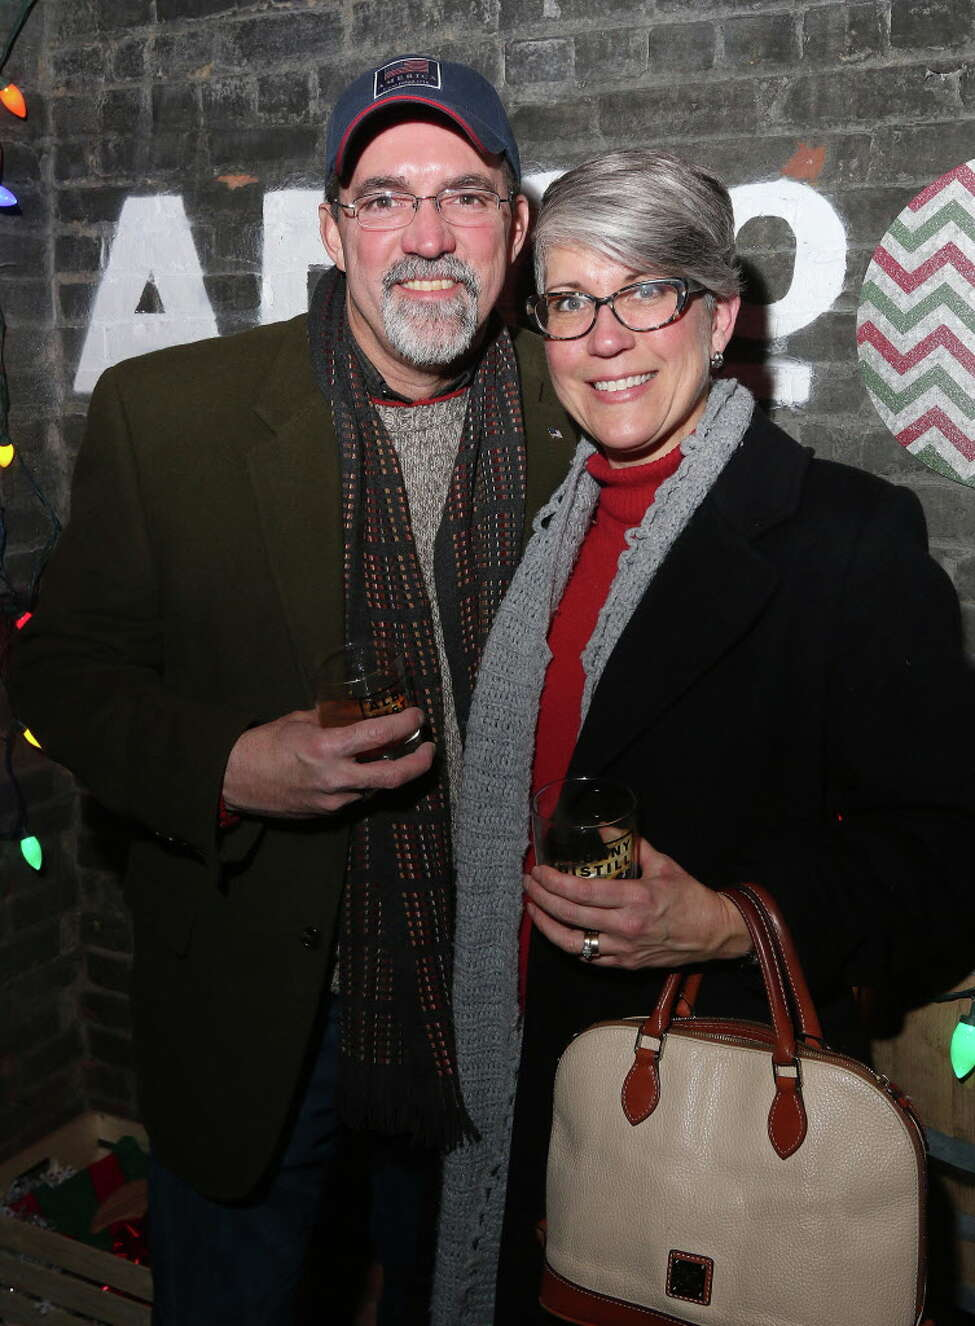 Albany, NY - December 17, 2016 - (Photo by Joe Putrock/Special to the Times Union) - Doug(left) and Beth(right) Slezak during the Albany Distilling Co.'s fourth annual-ish holiday party held at the distillery in downtown Albany. ORG XMIT: 10